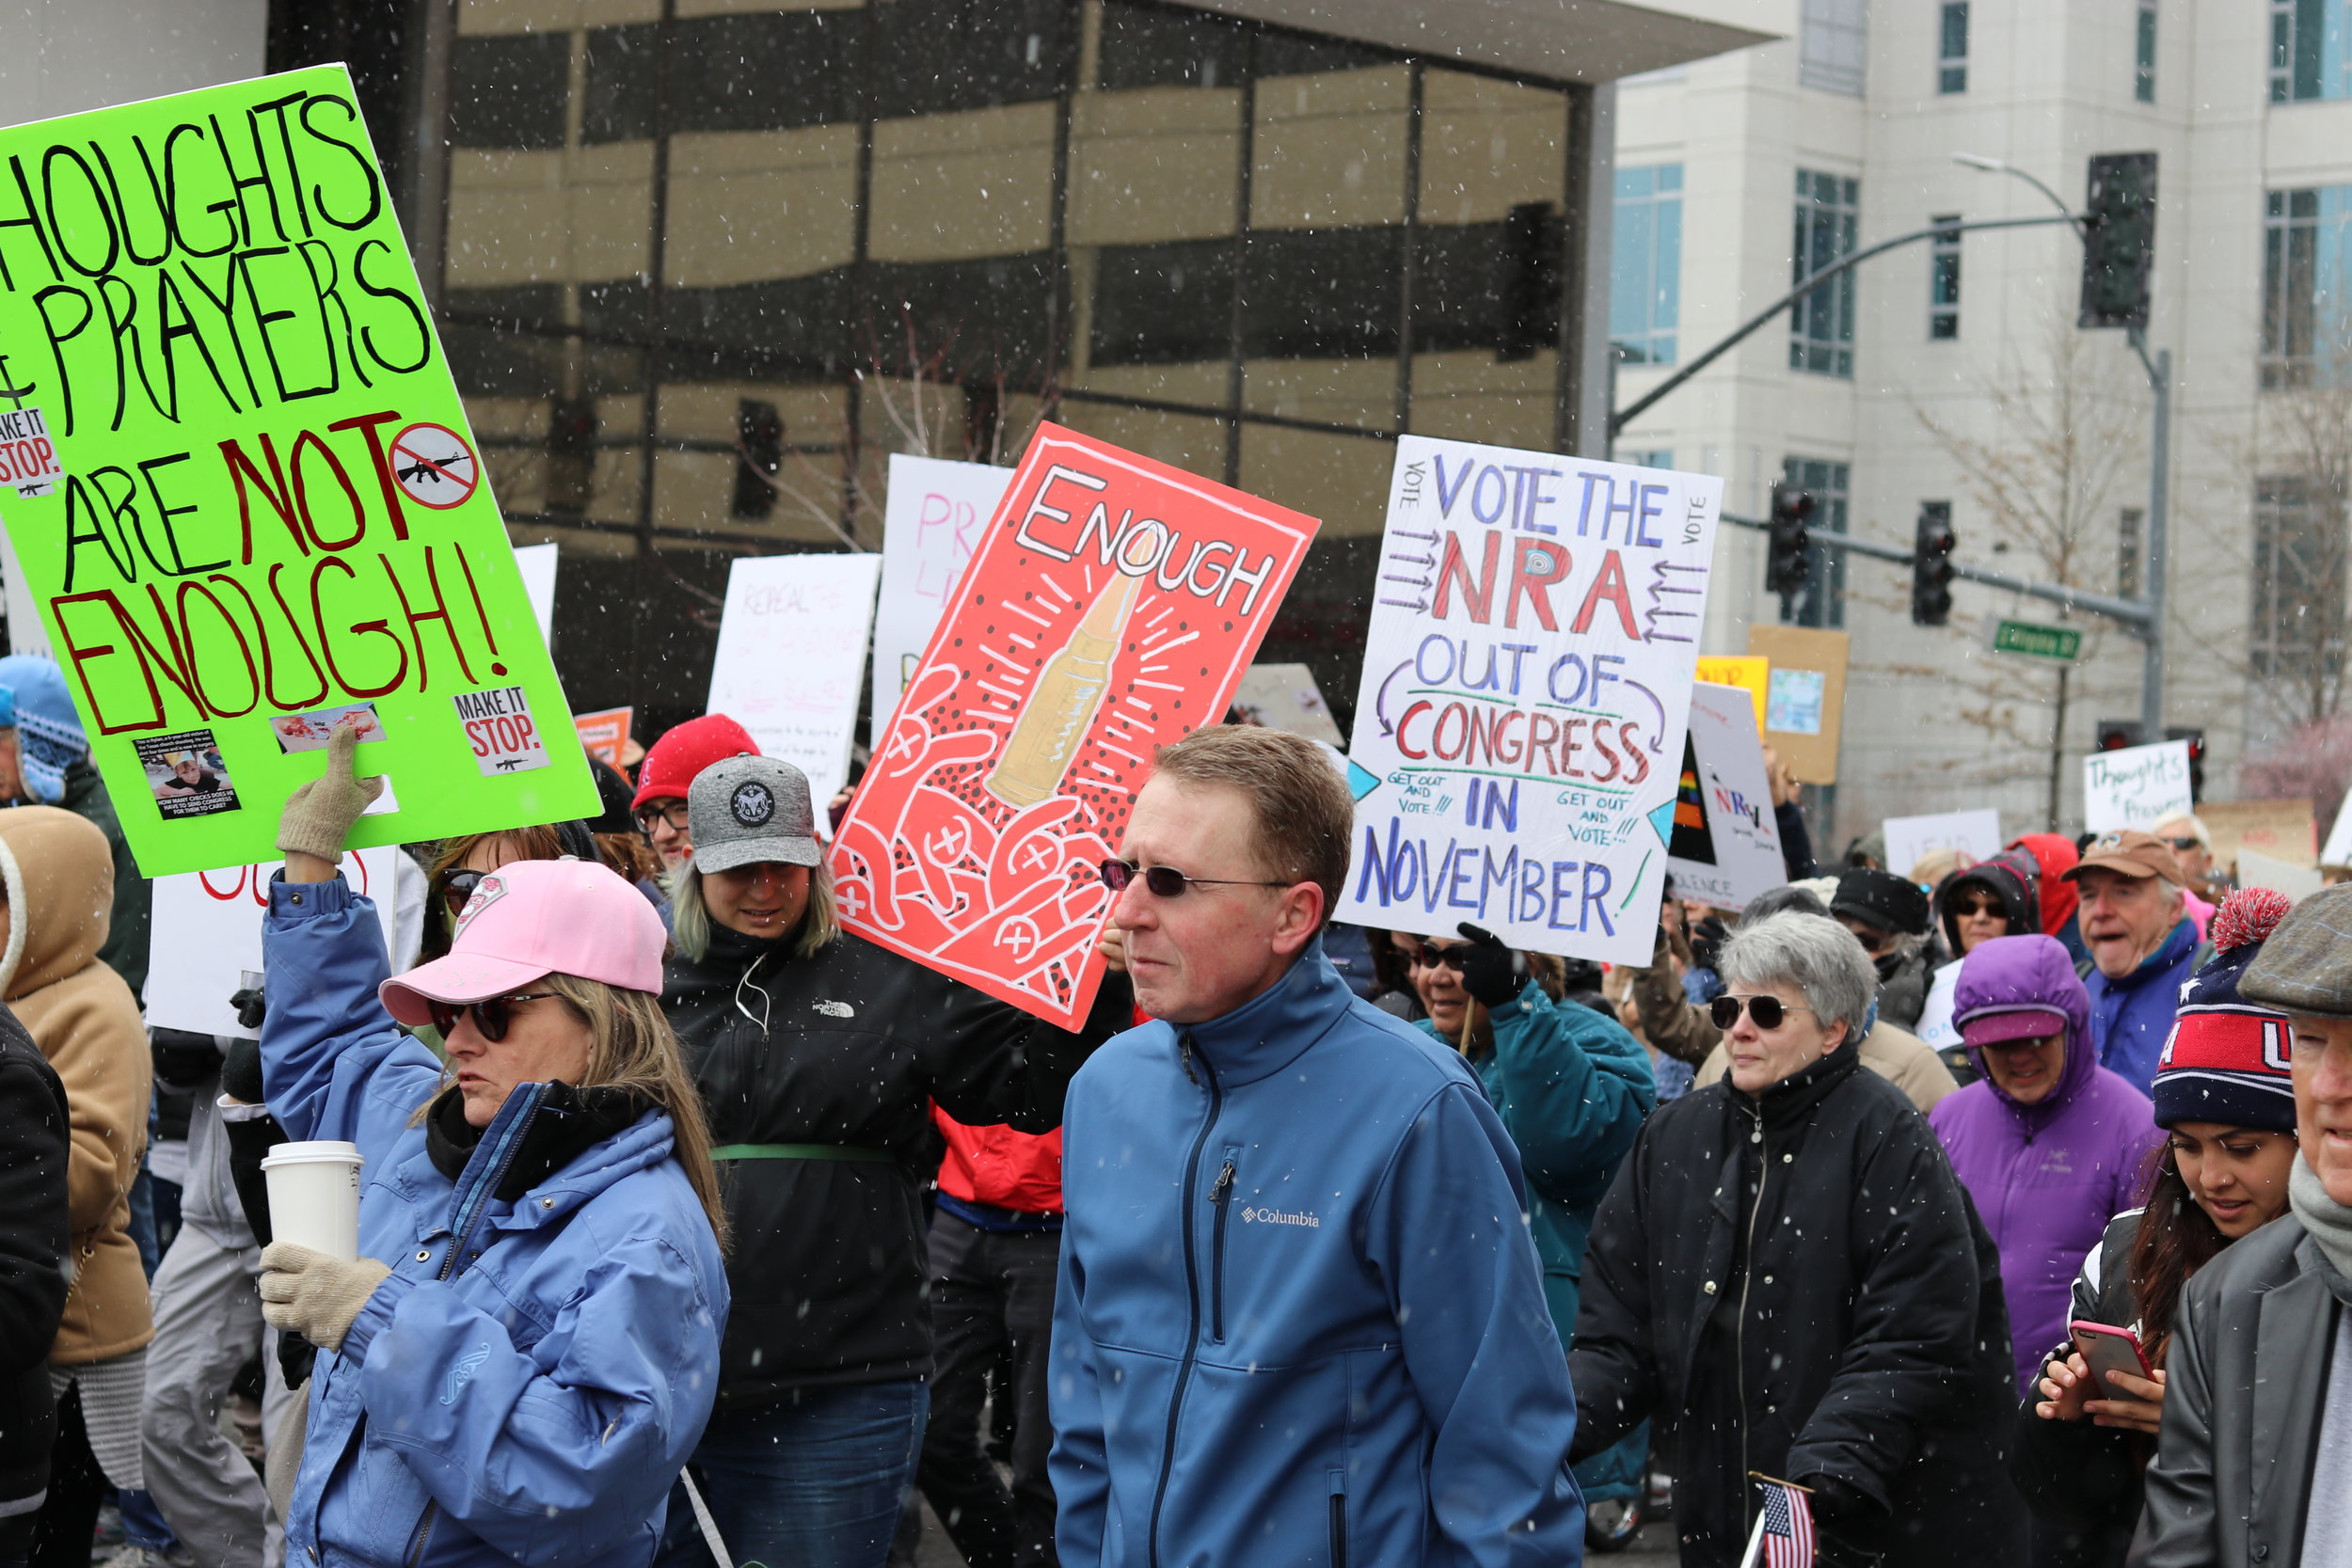 Inspired, but Angry - The #MarchForOurLives event in Reno was huge and inspiring, but I also felt angry thinking about all the lives needlessly lost because legislators can't make common sense gun reform happen.